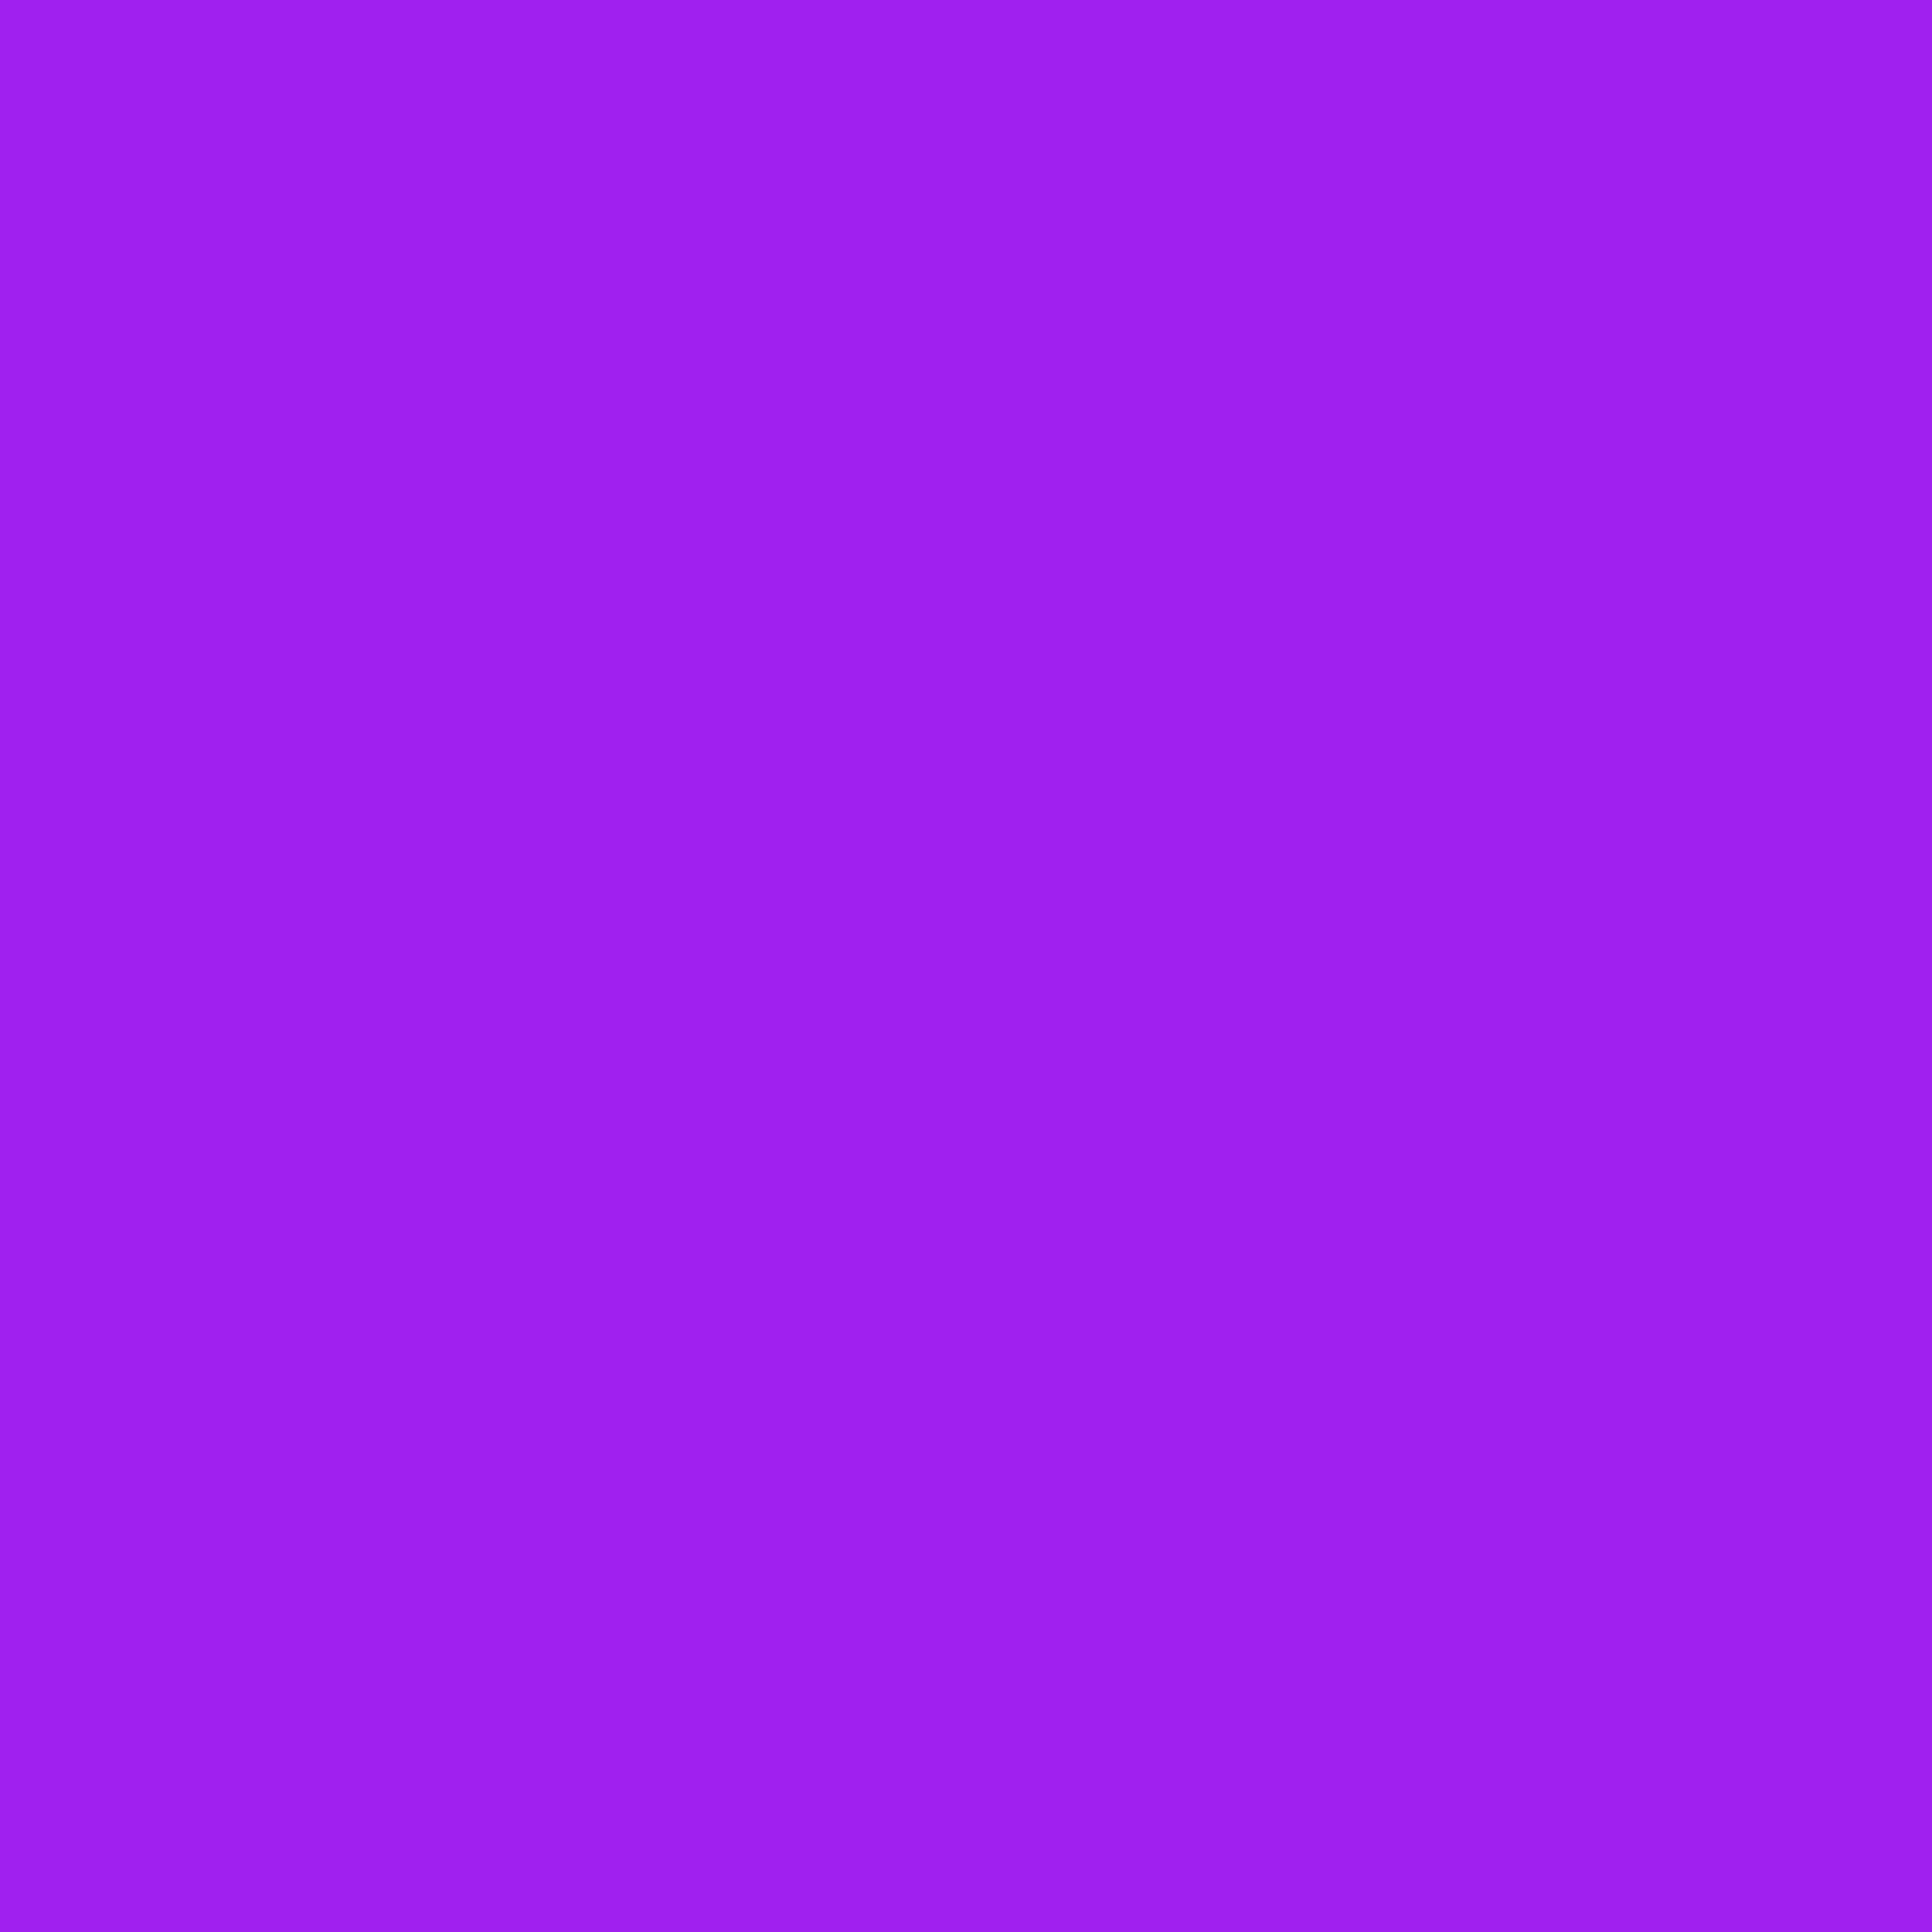 2048x2048 Purple X11 Gui Solid Color Background